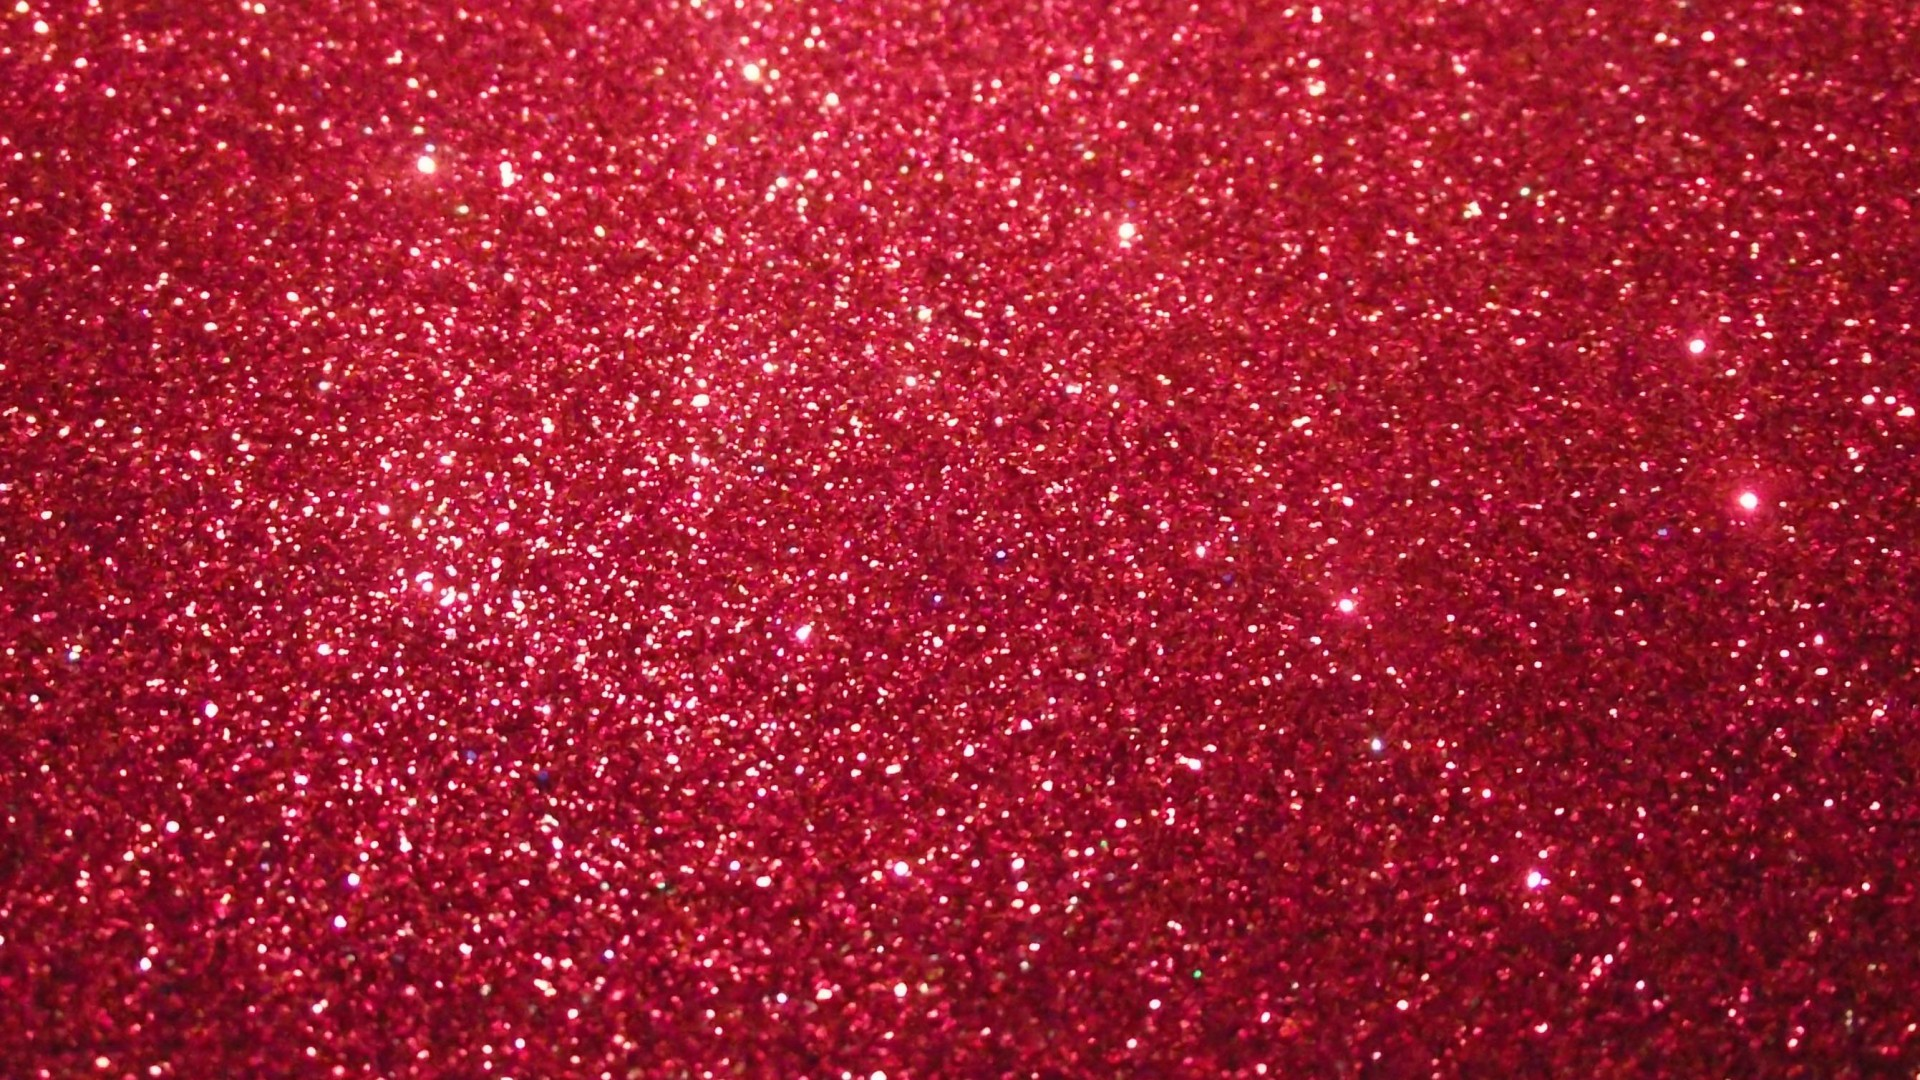 Wallpaperwiki Images Pink Glitter Backgrounds PIC WPE